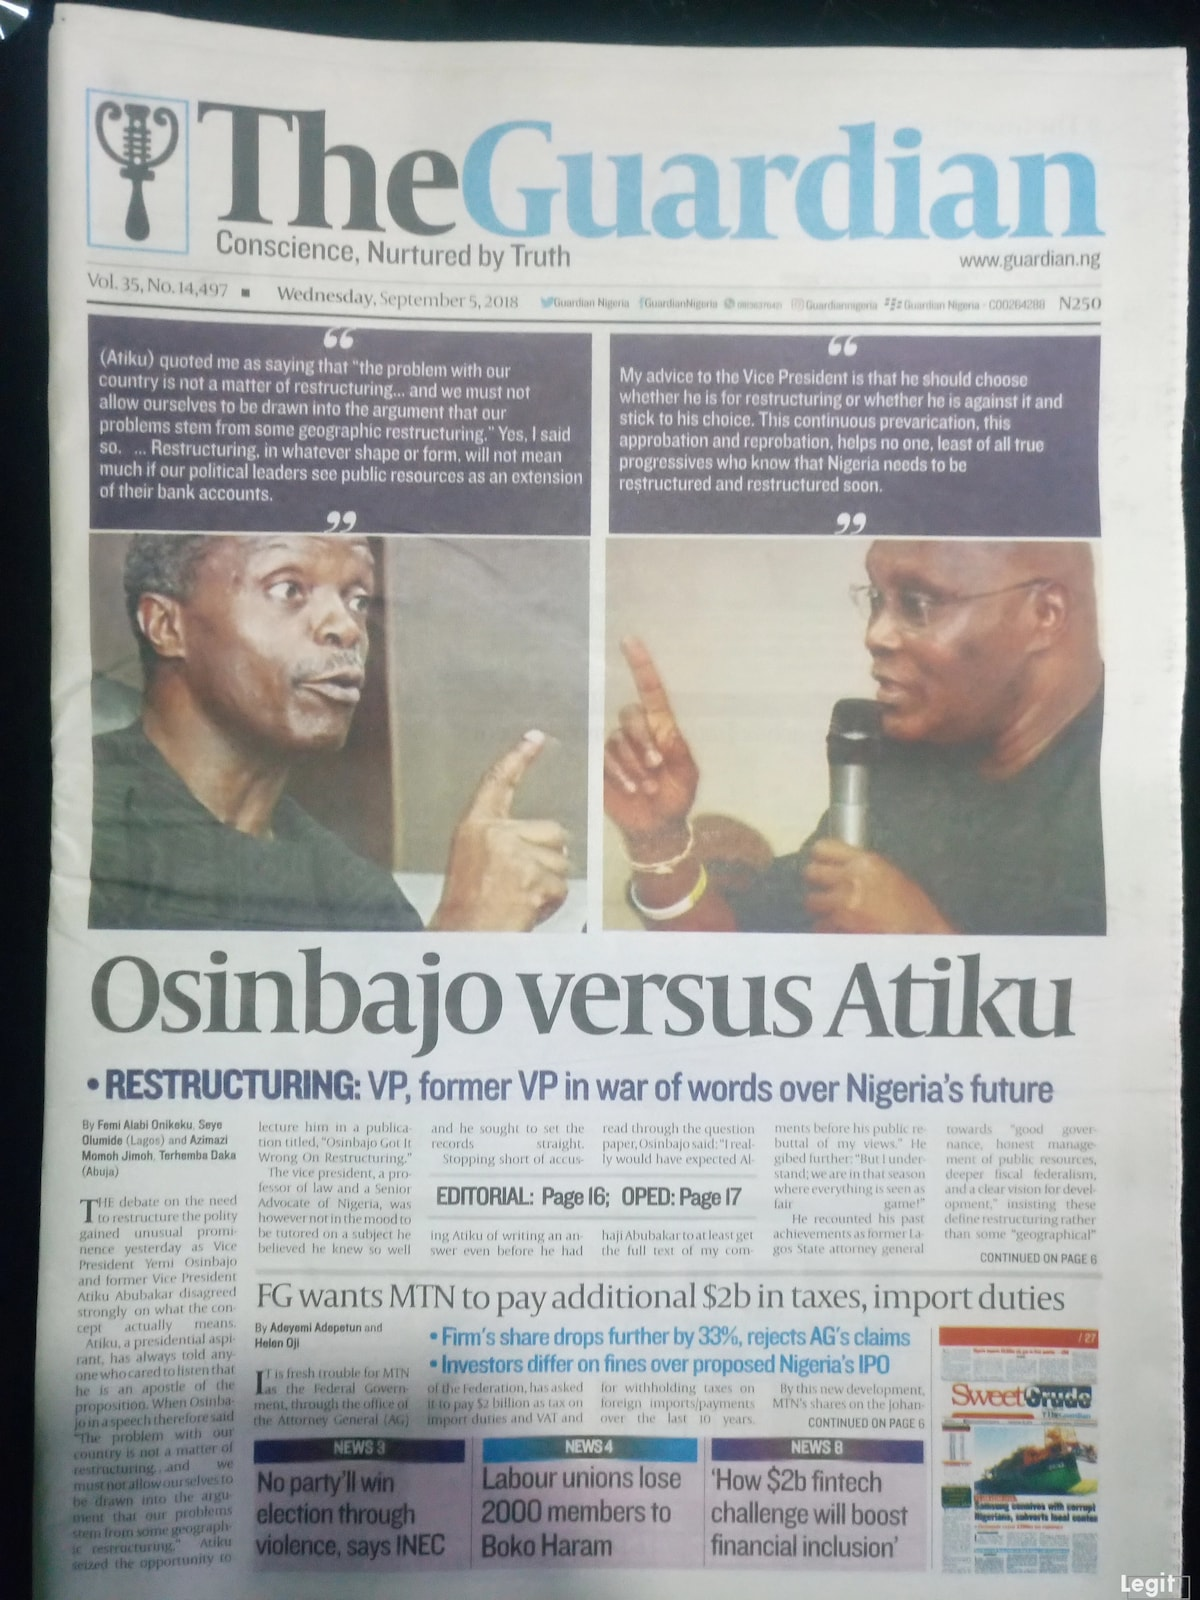 The Guardian newspaper review for Wednesday, September 5.